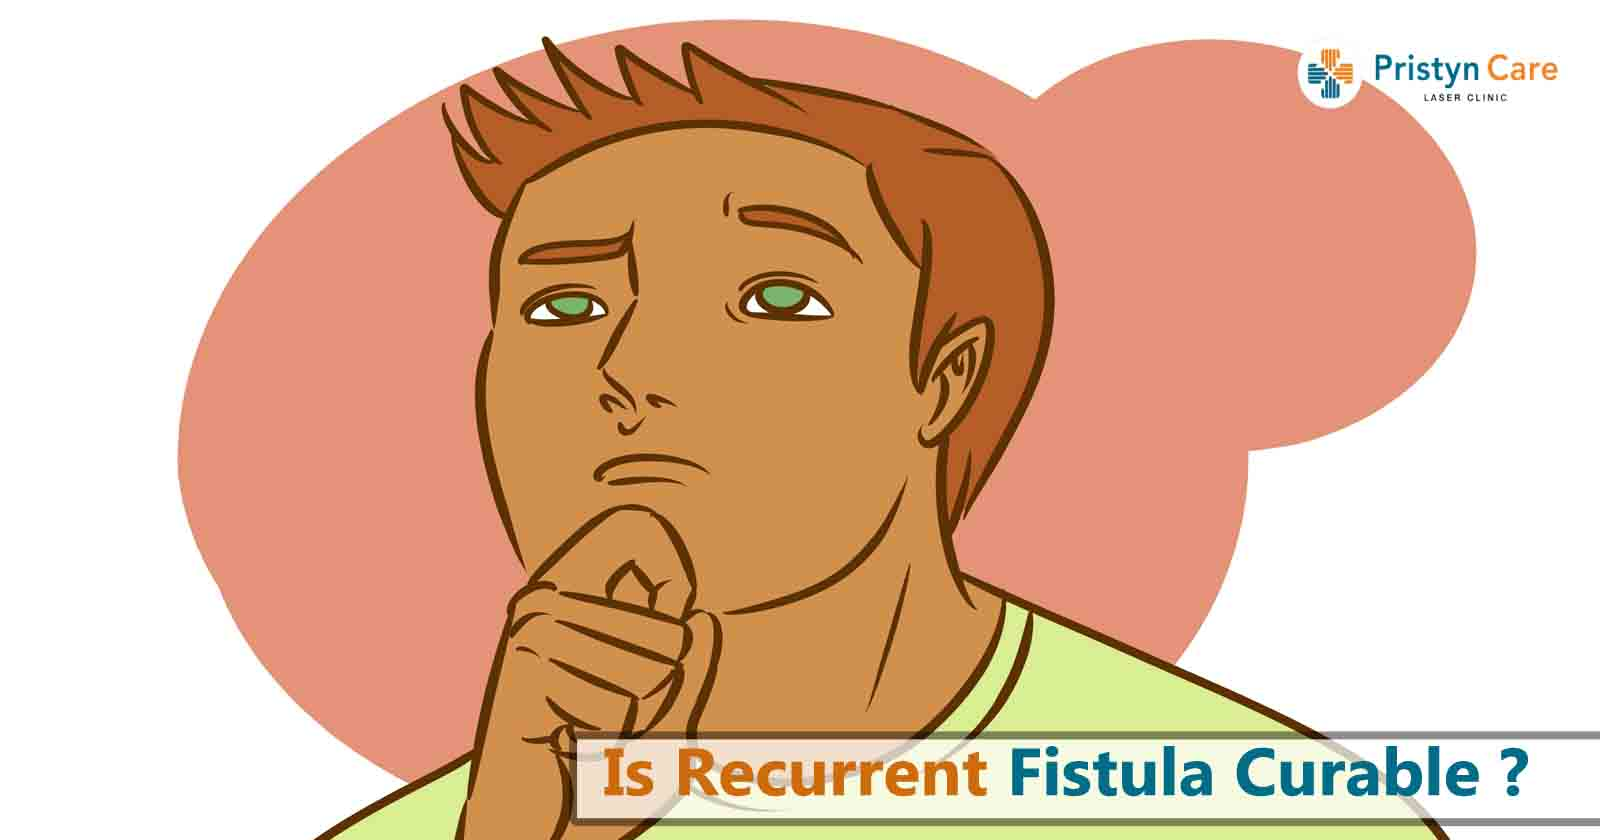 Is Recurrent Fistula Curable?